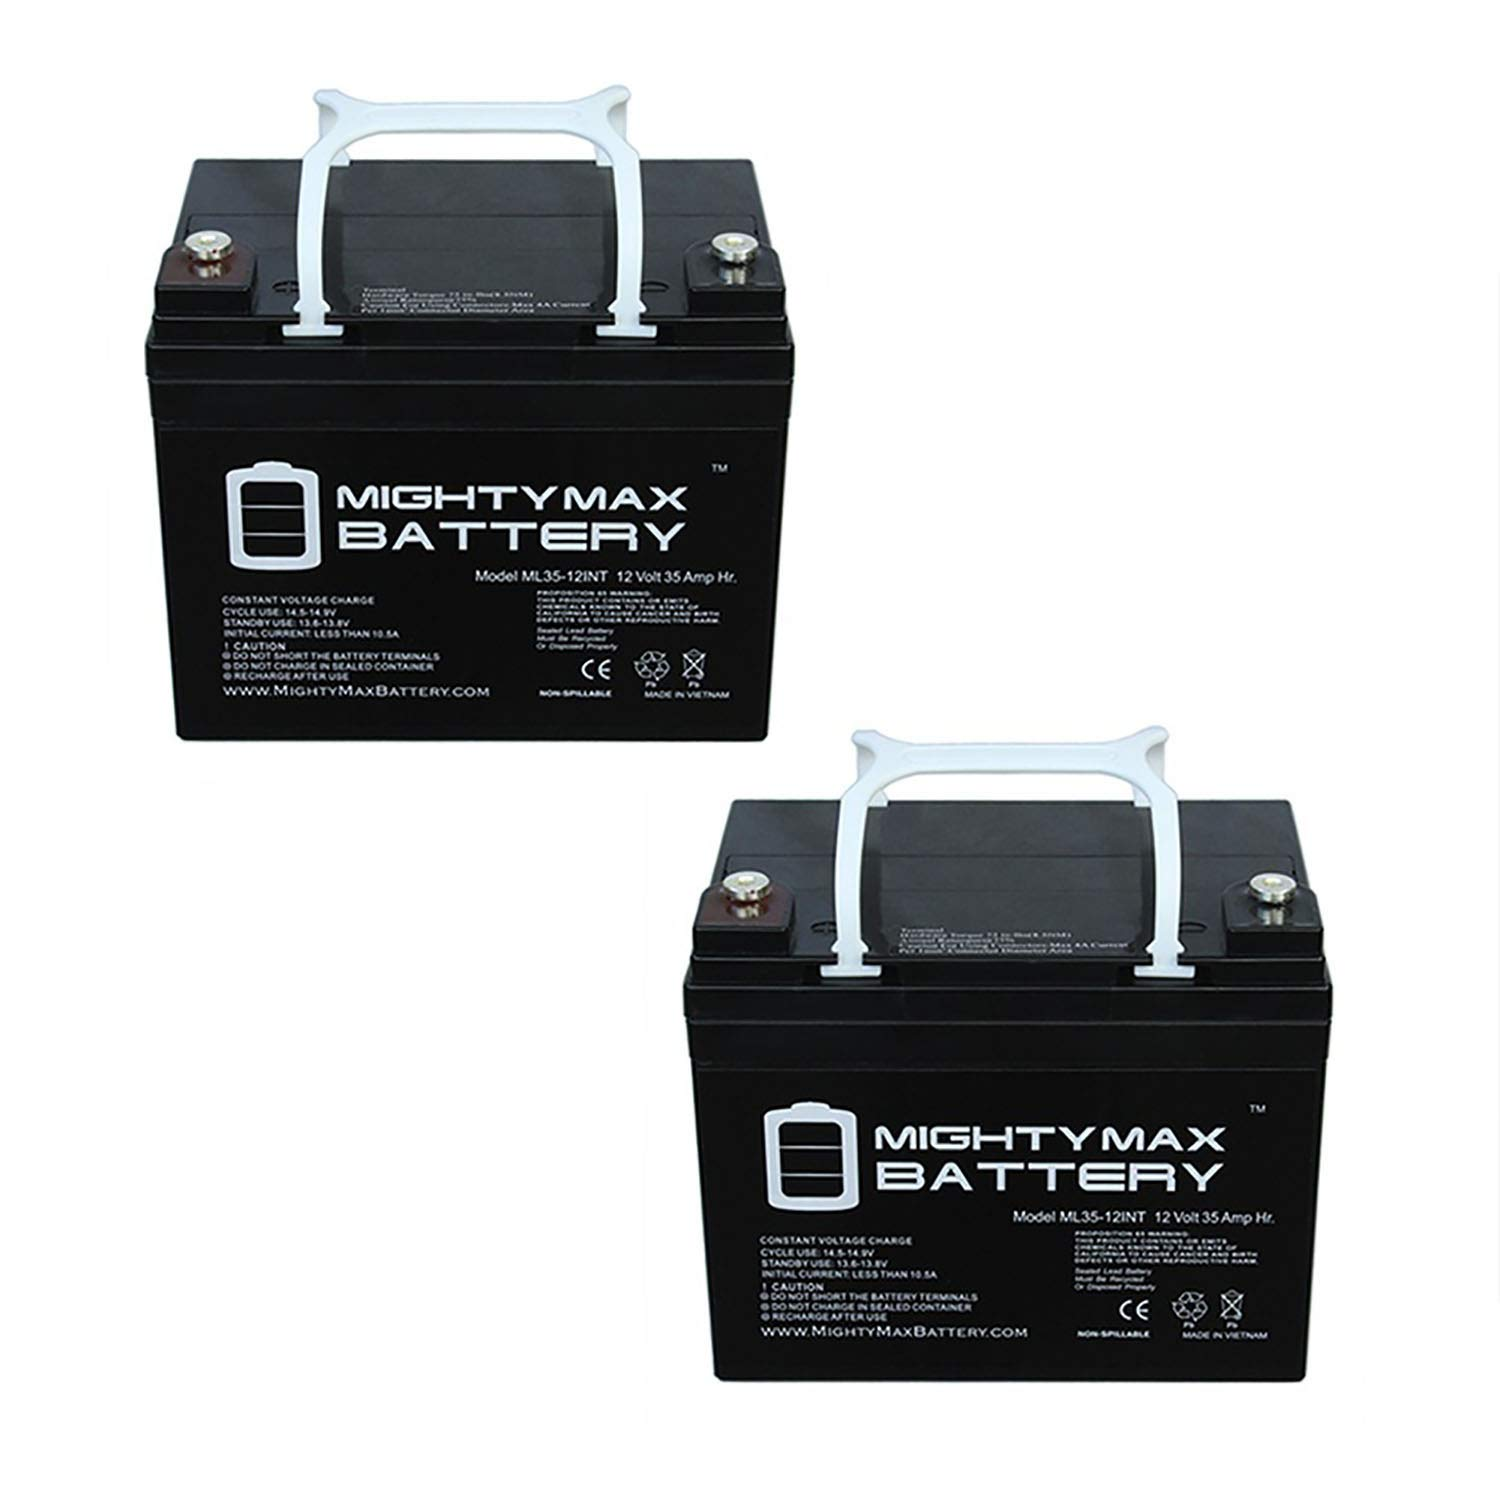 Mighty Max Battery 12V 35AH INT Battery Replaces Golden Technology,Companion - 2 Pack Brand Product